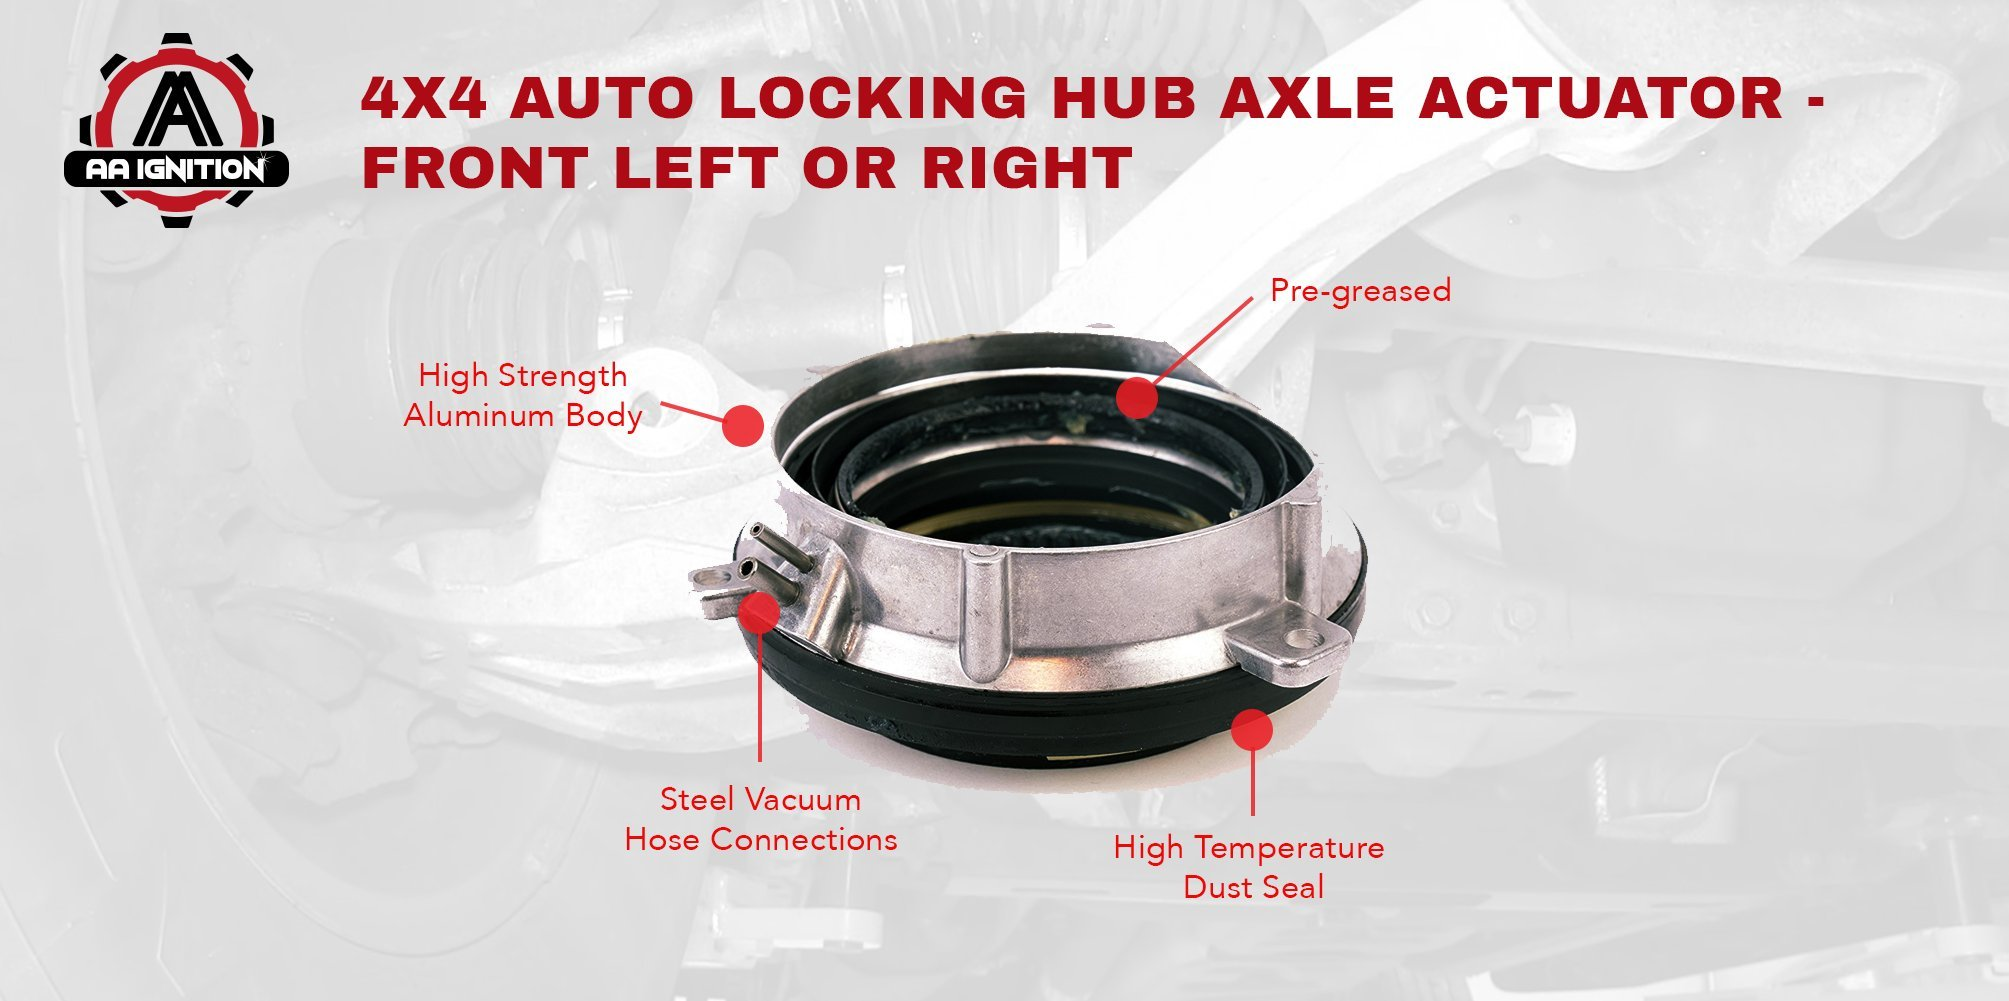 4 Wheel Drive 4x4 4wd Auto Locking Hub Axle Actuator Front Left Or 2006 Ford F 150 Iwe Solenoid Right Replaces Part 7l1z 3c247 A Fits 2004 2012 F150 2003